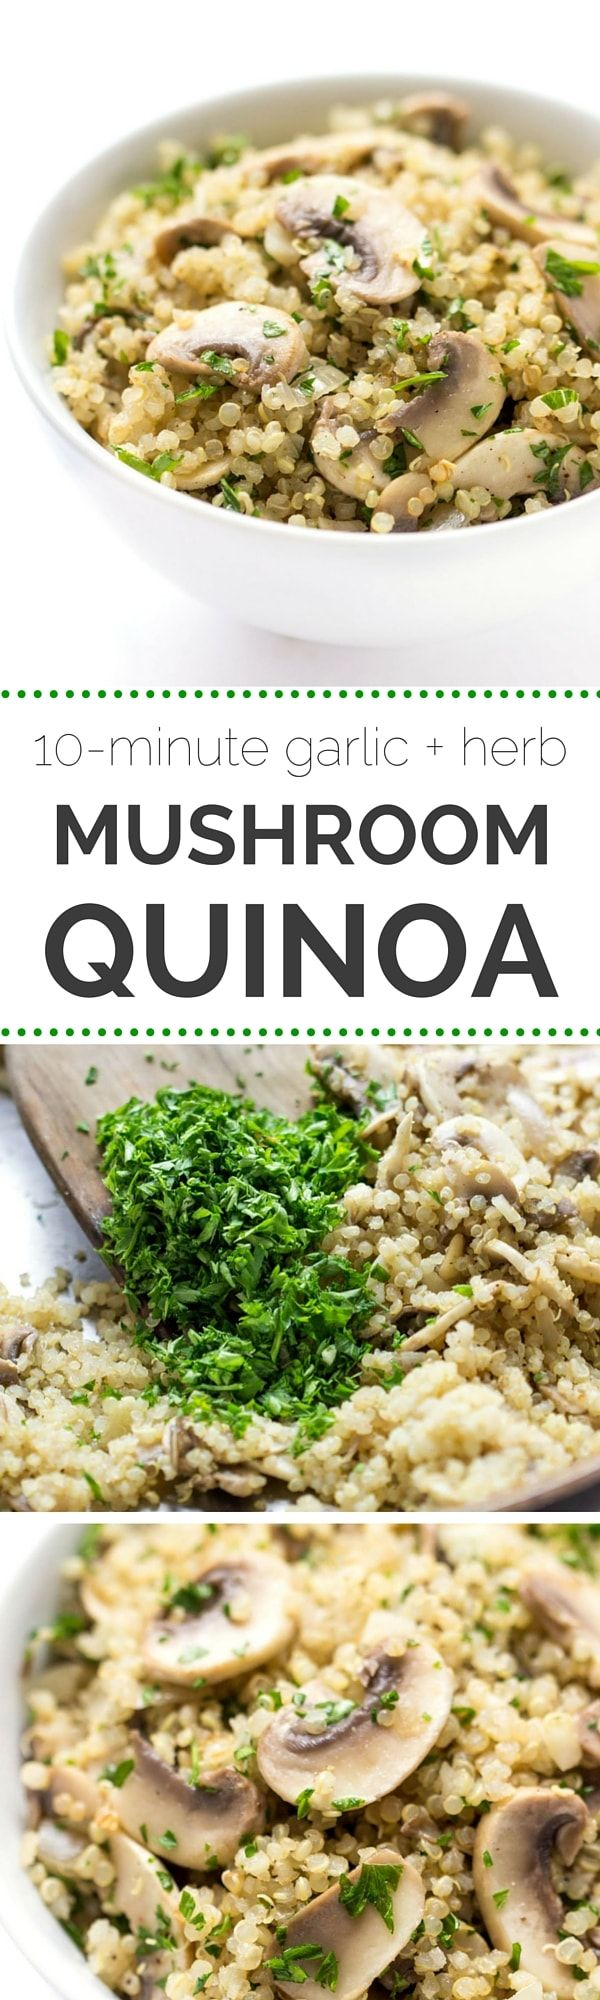 GARLIC + HERB MUSHROOM QUINOA -- a 10-minute meal that uses less than 10 ingredients and taste delicious!